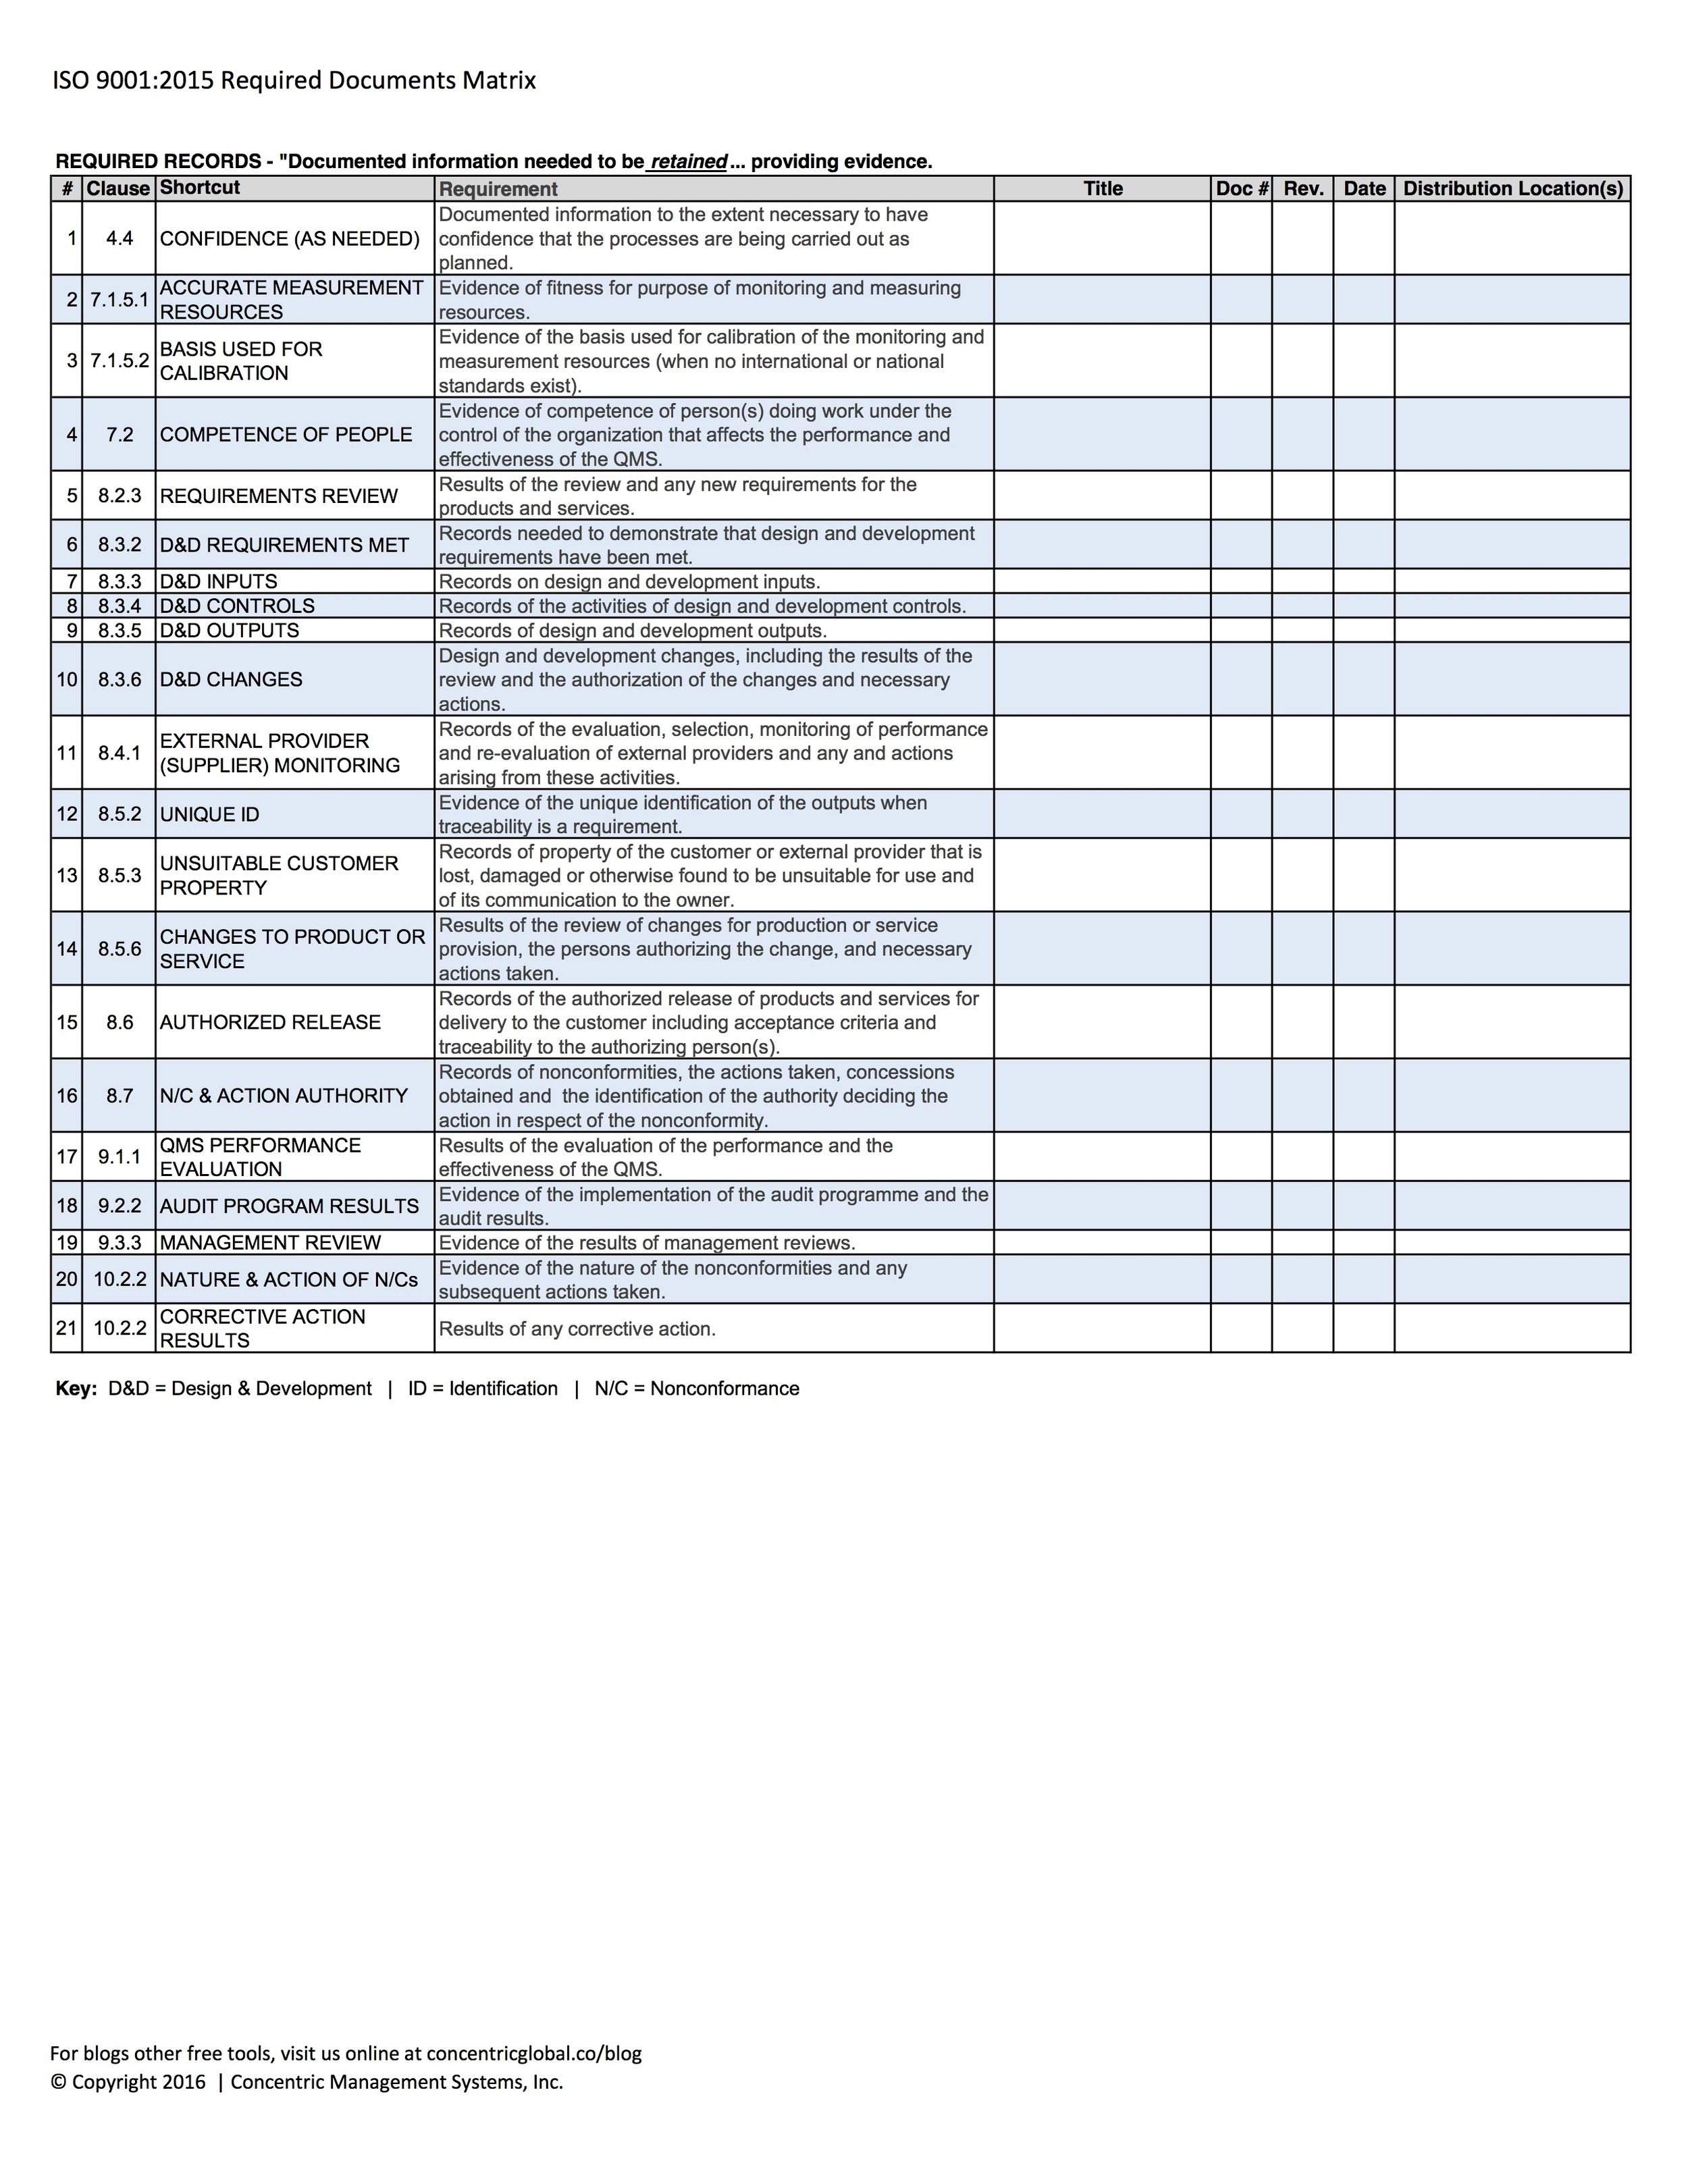 Click the image to download ISO 9001_2015 Required Documents Matrix (3.17.16)